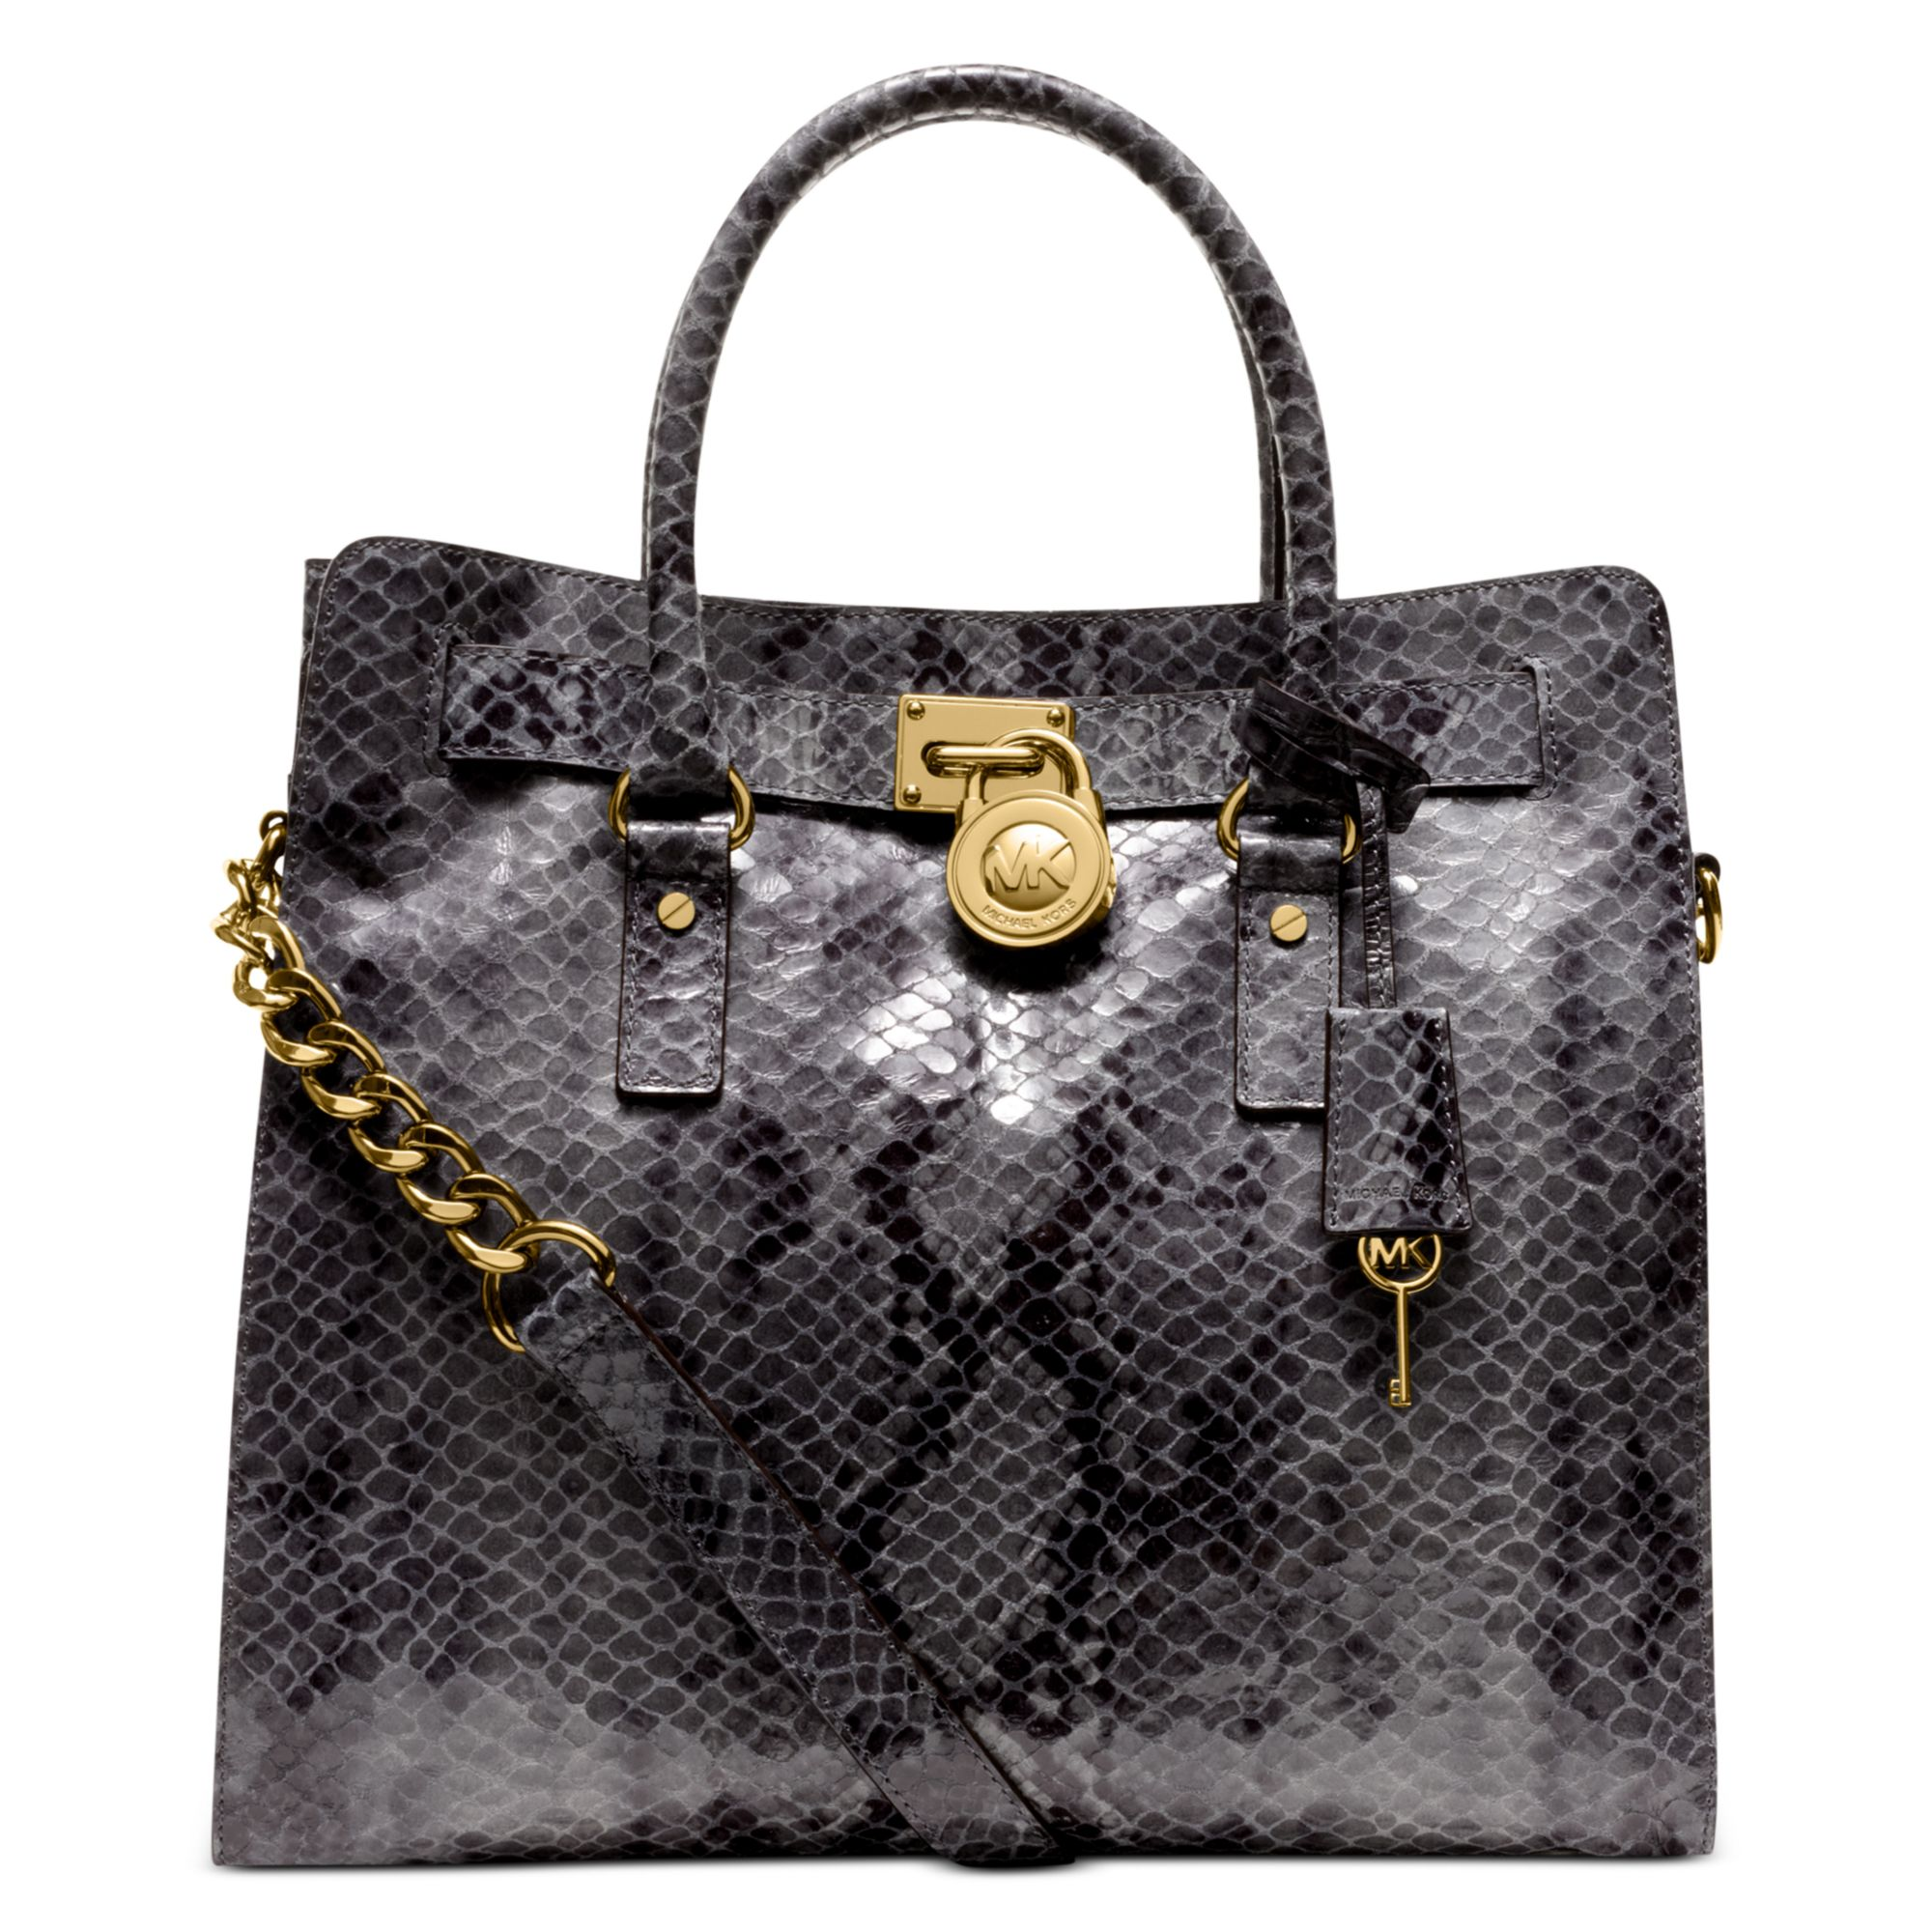 77ef7c305c78f6 Michael Kors Hamilton Large Python North South Tote in Gray - Lyst